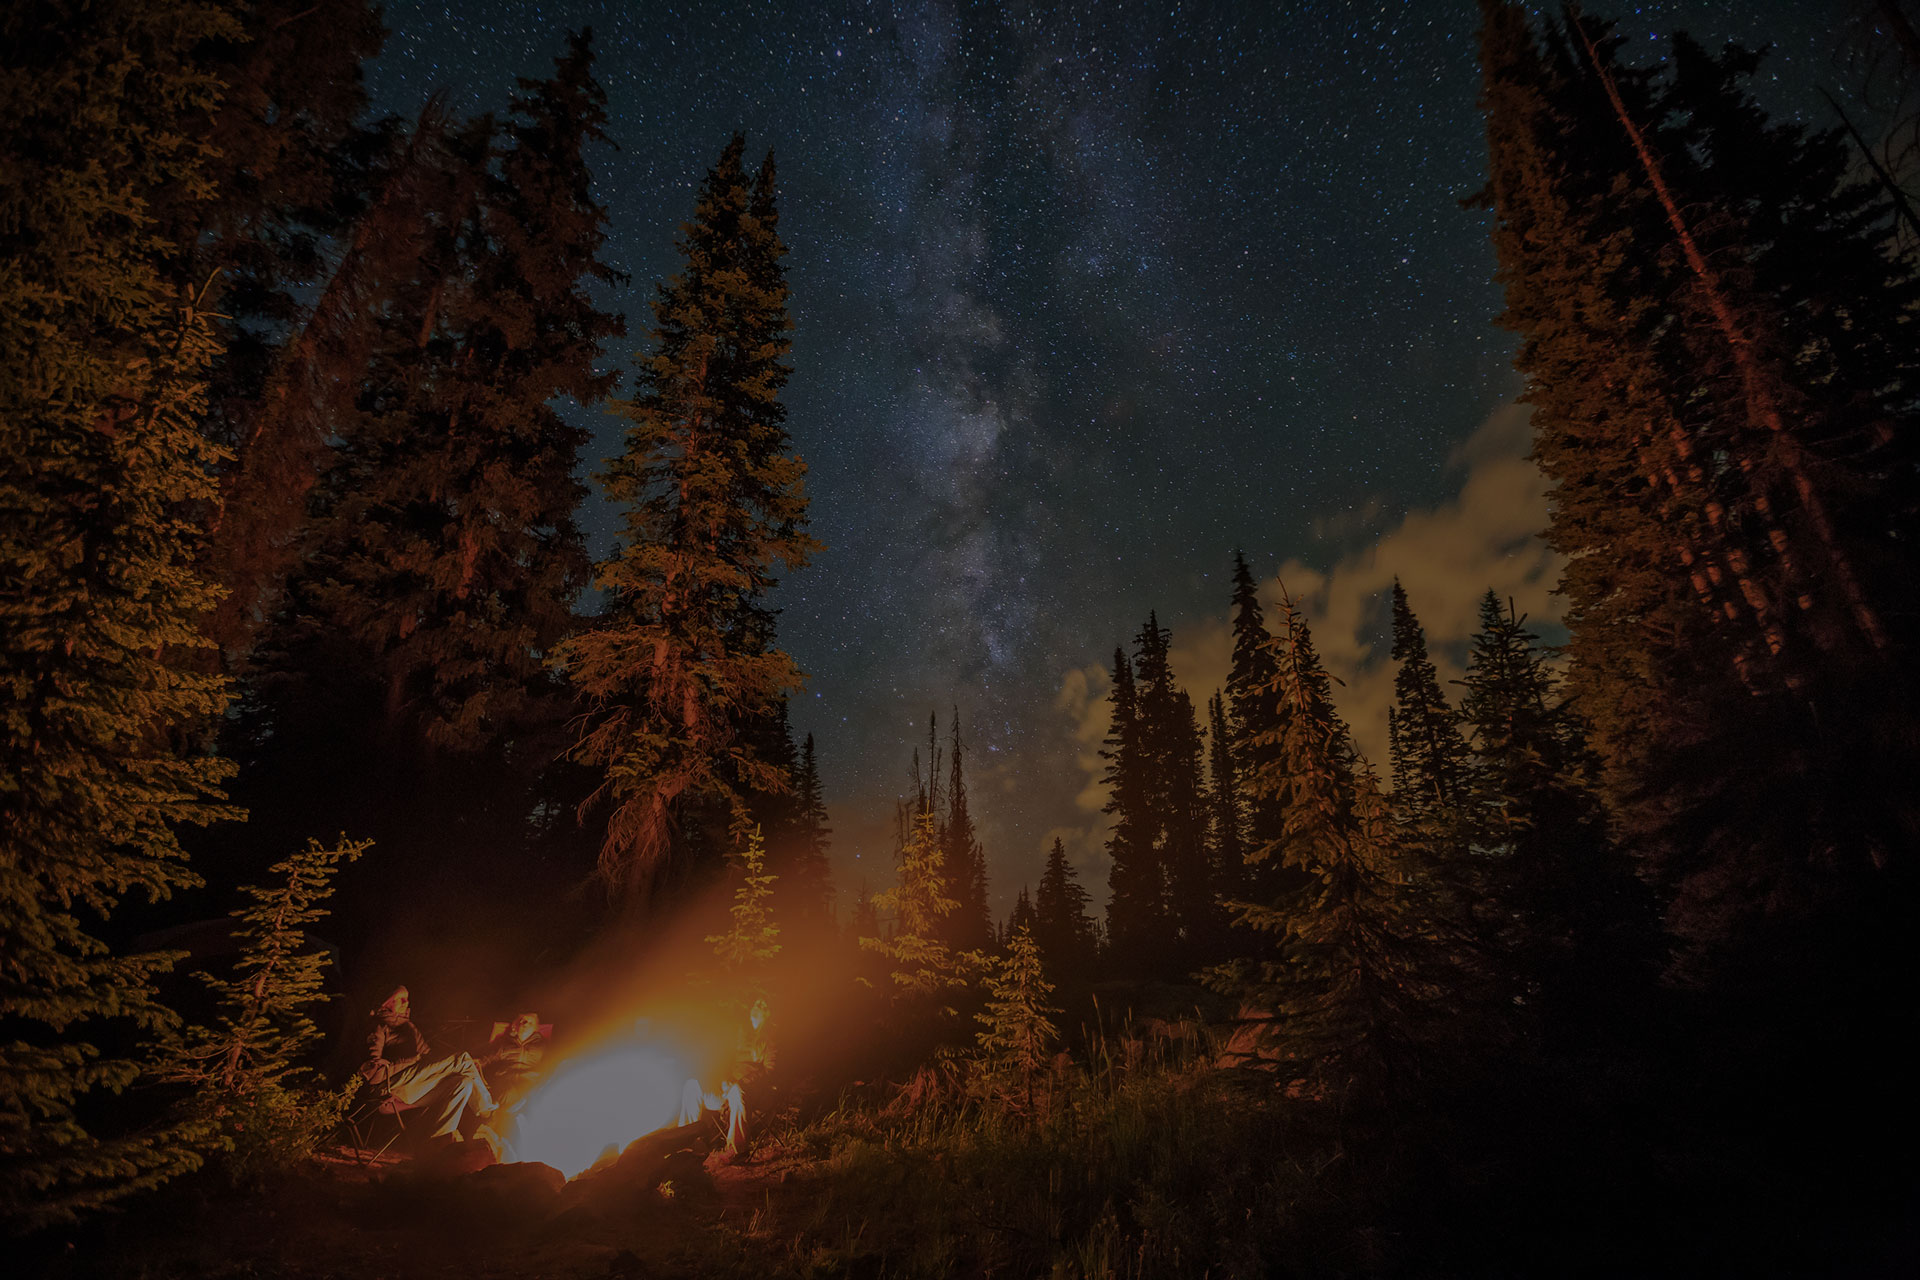 Family stargazing by a campfire